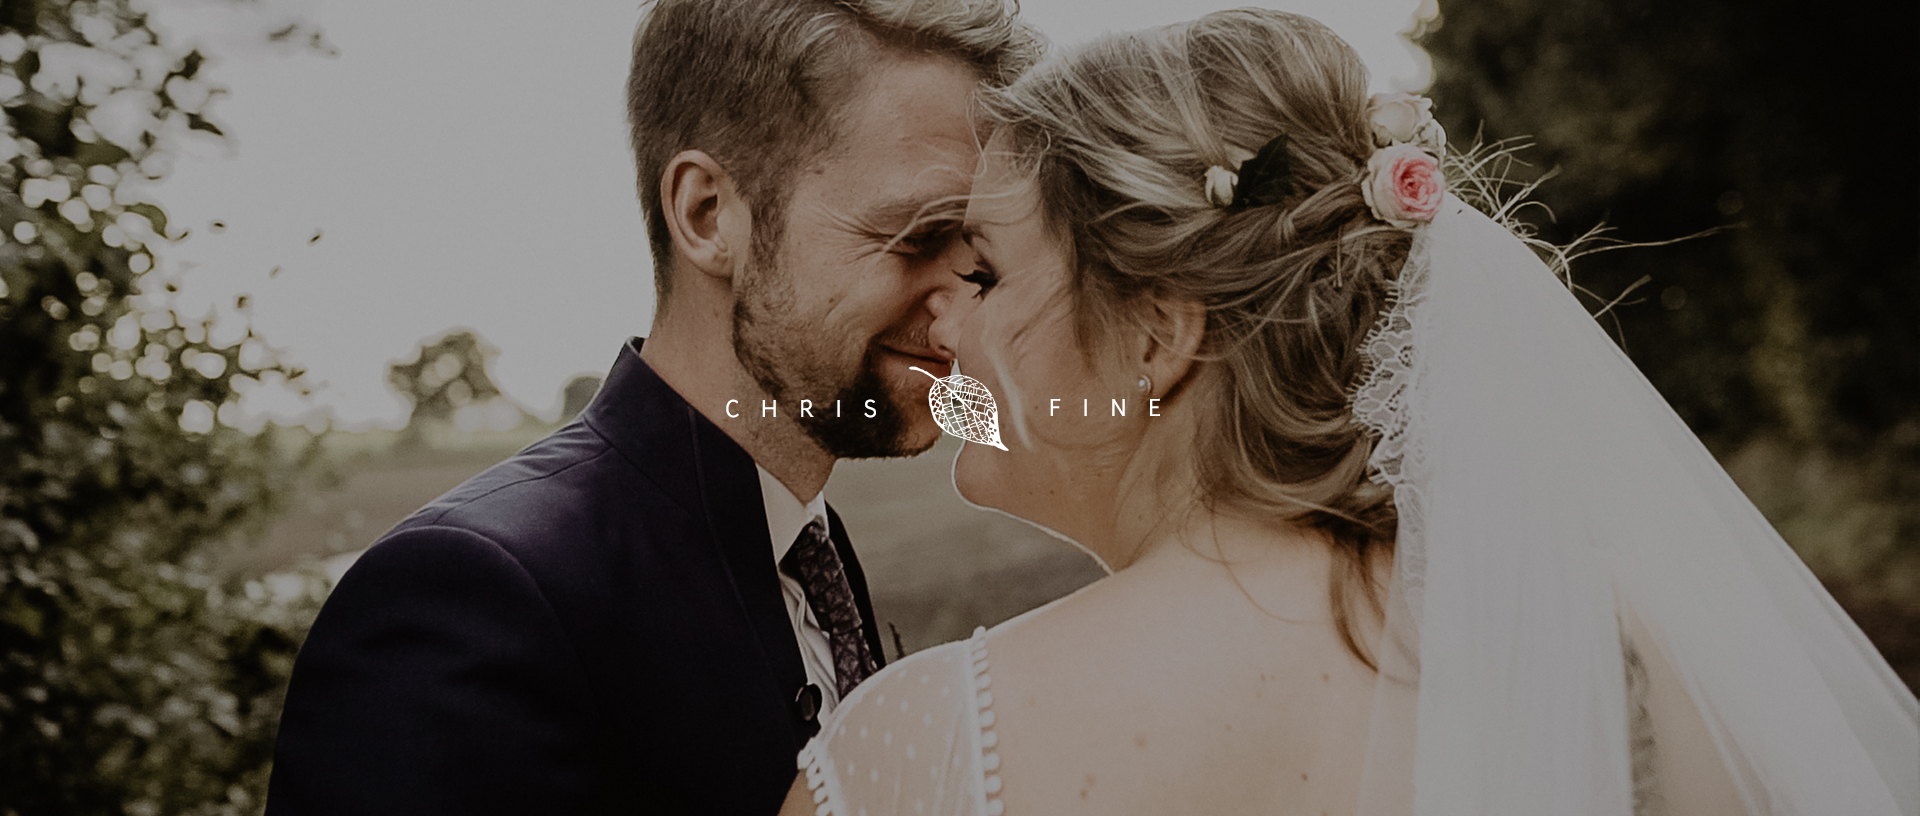 Chris + Fine | hamburg, Germany | The Brides Parents Farm